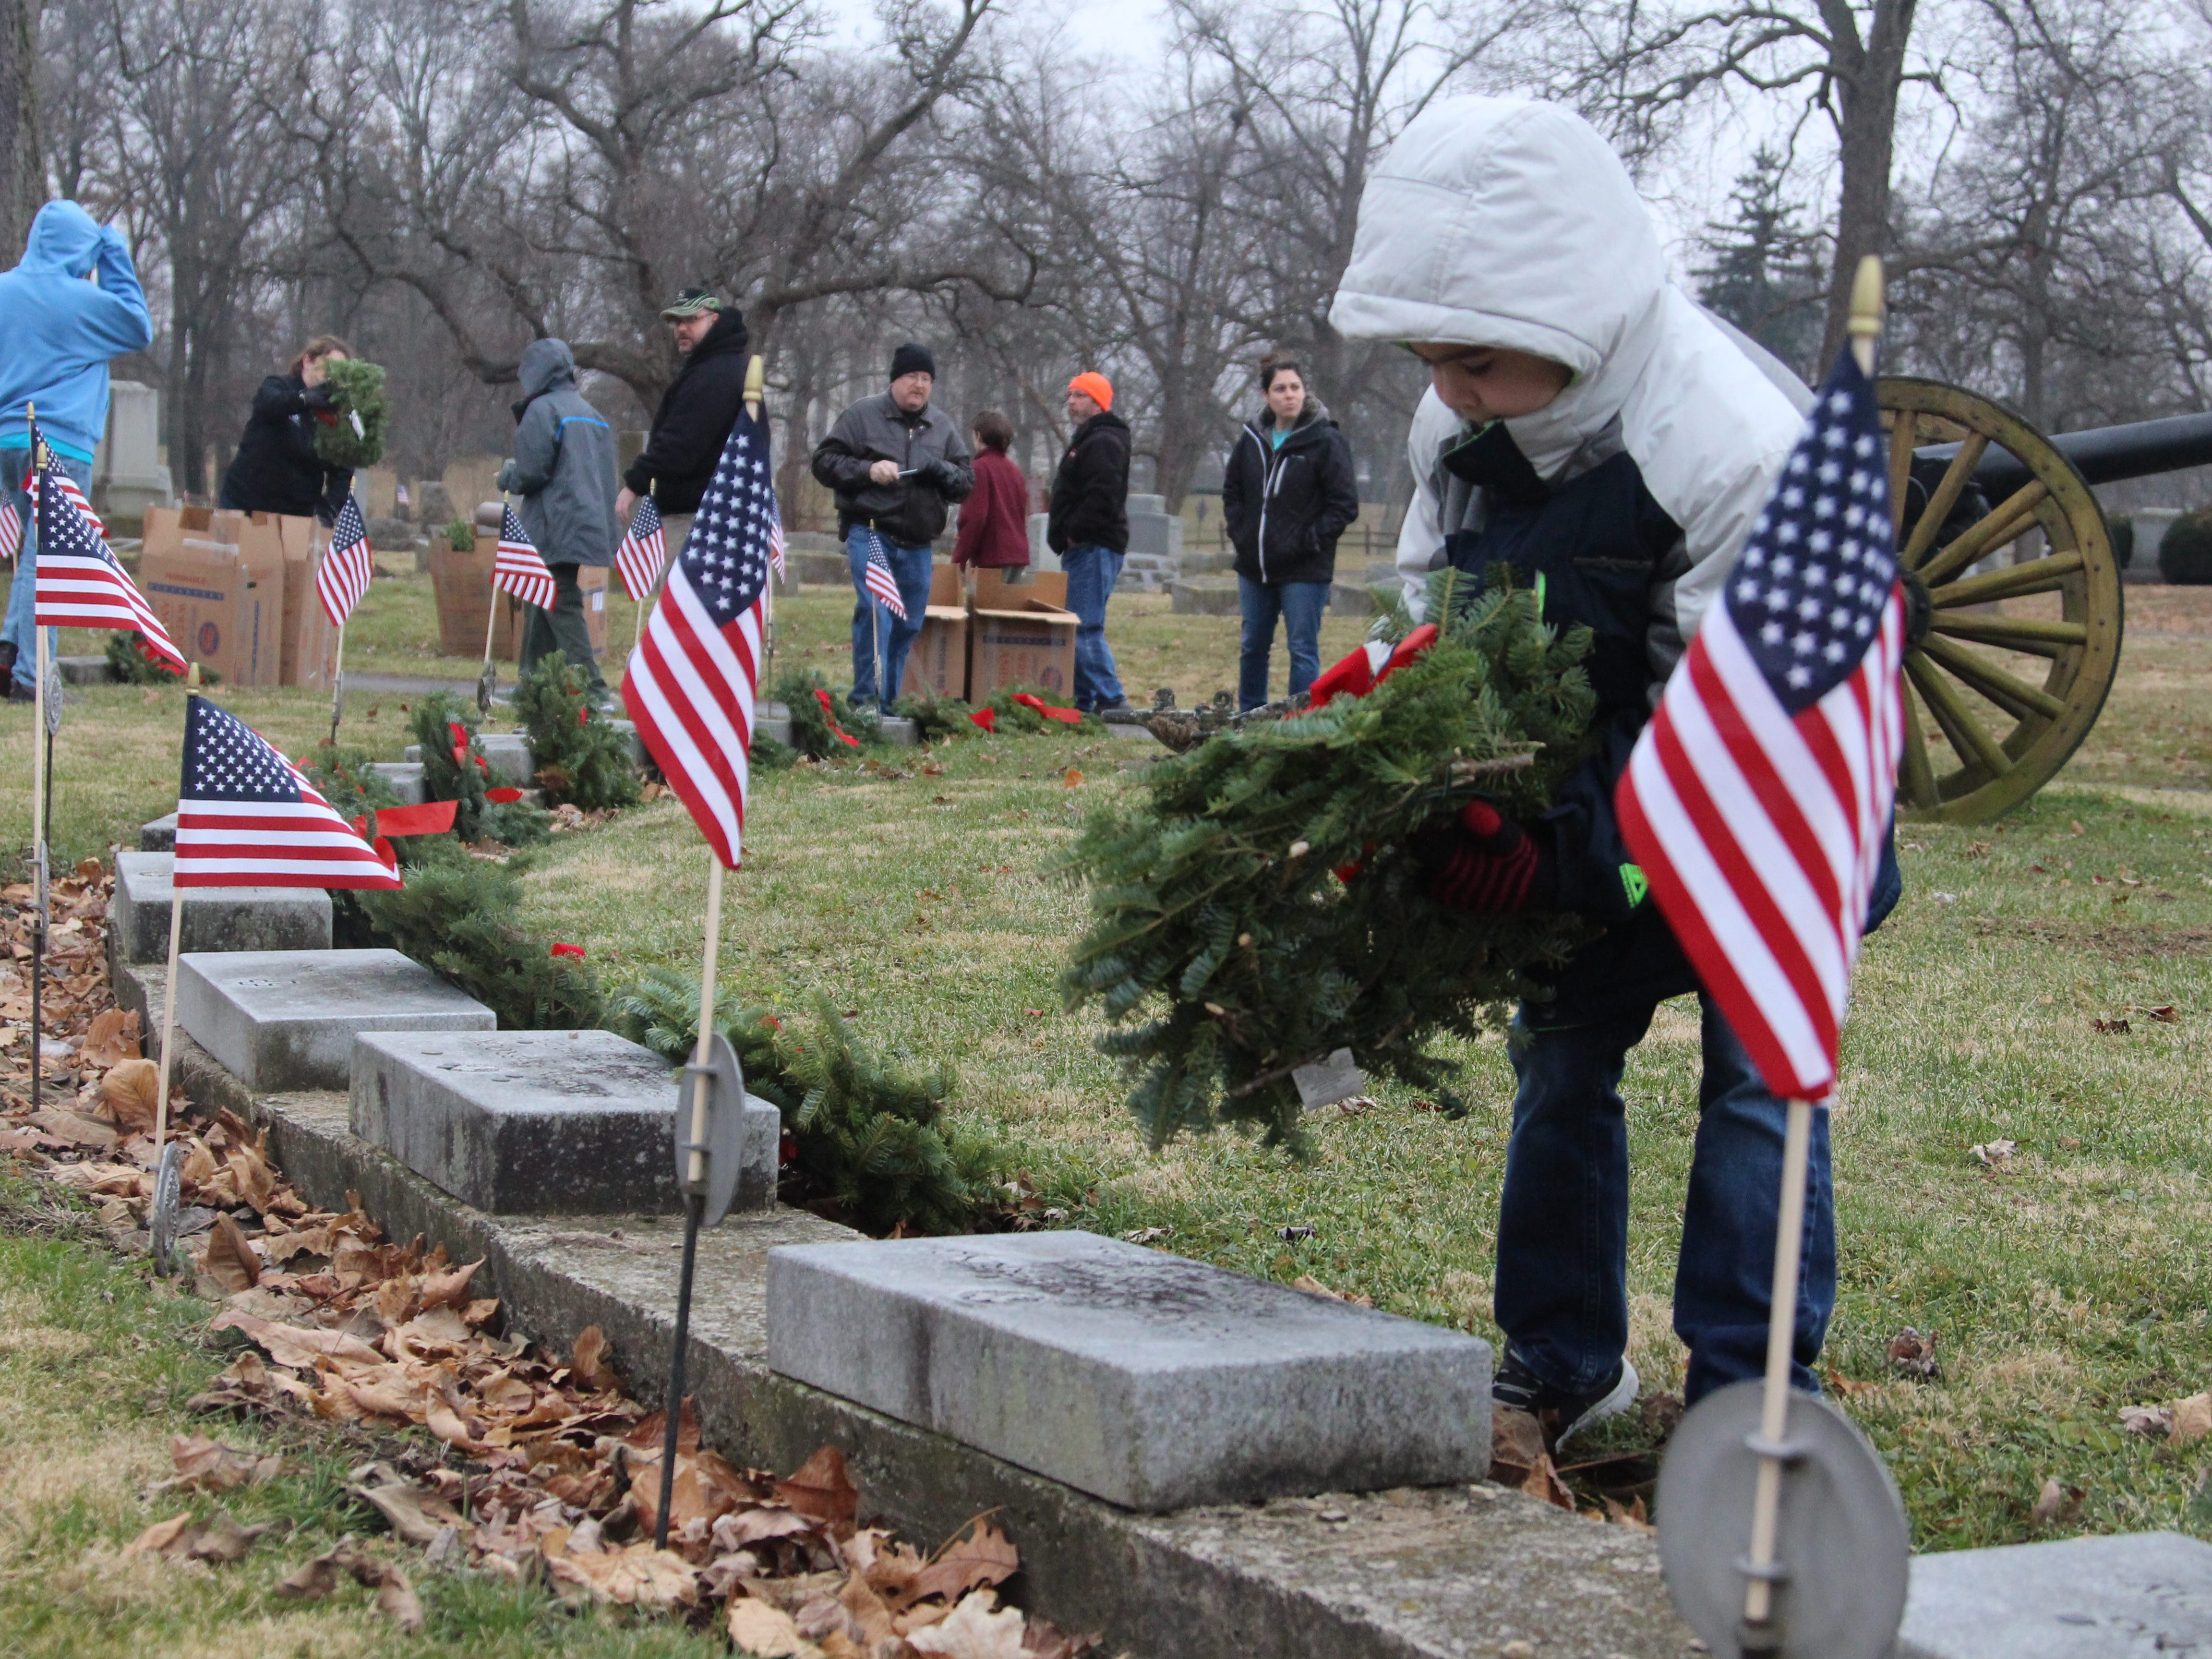 Volunteers place wreaths at the foot of veterans' grave sites Saturday at Marion Cemetery for Wreaths Across America, a nationwide effort to honor veterans at the holiday season.